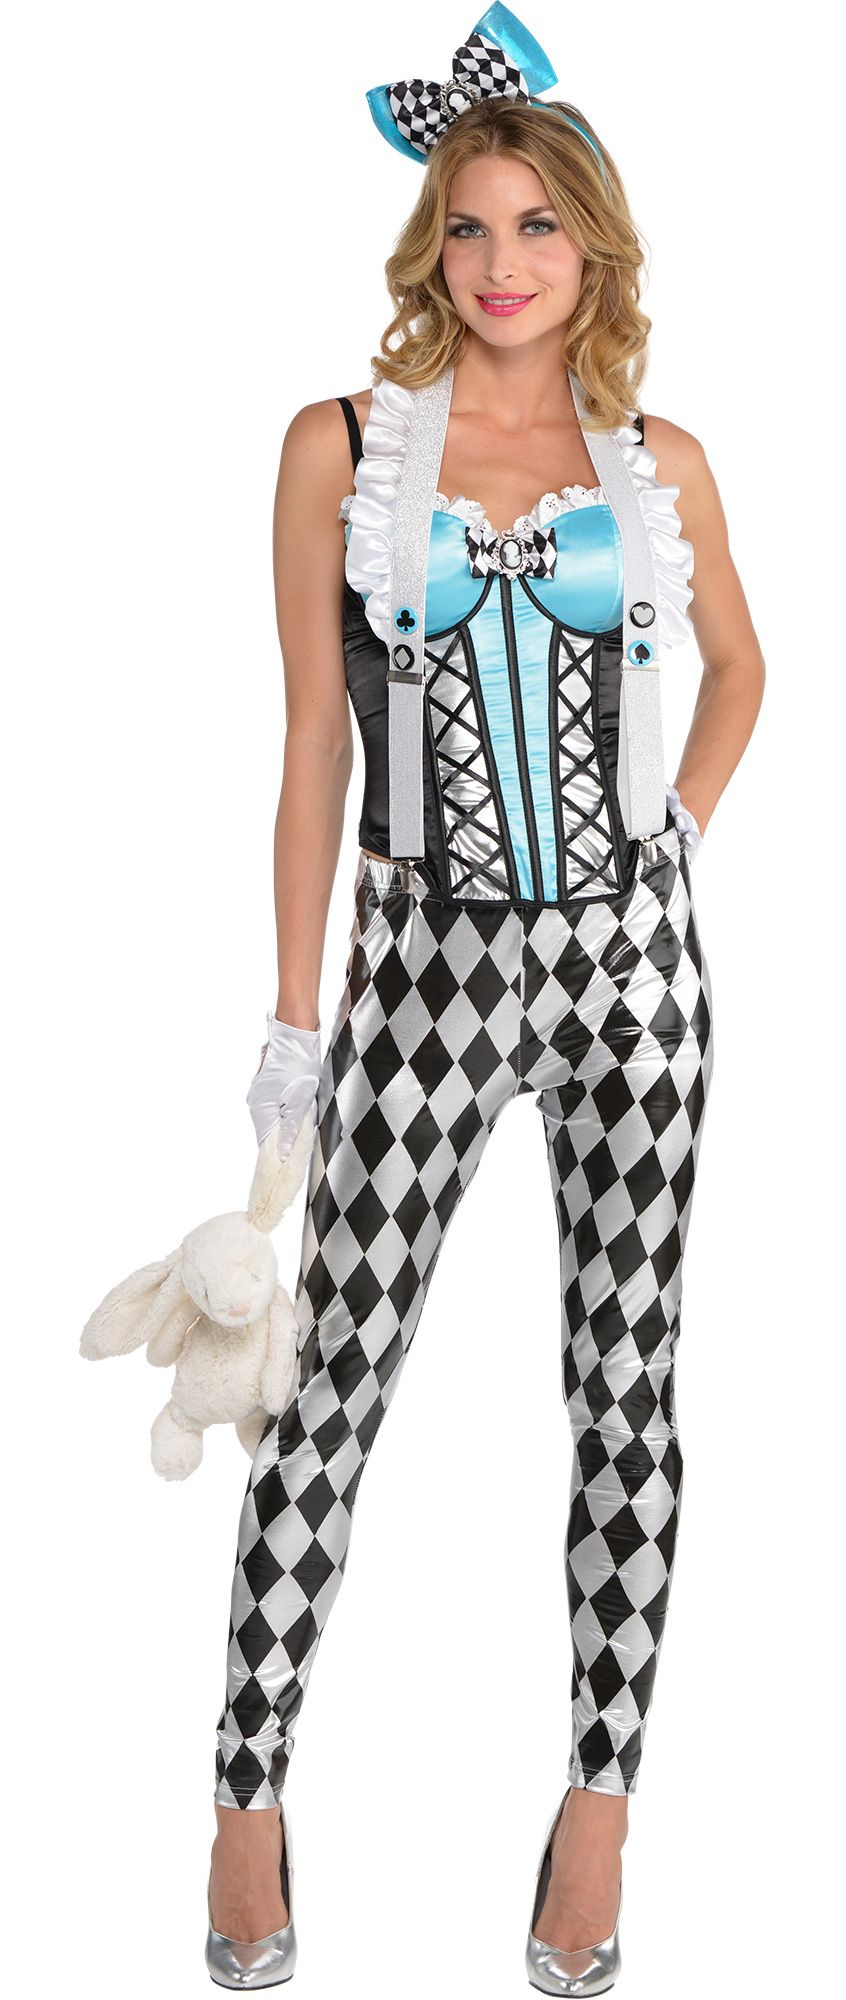 Create Your Own Look - Female Alice in Wonderland #3